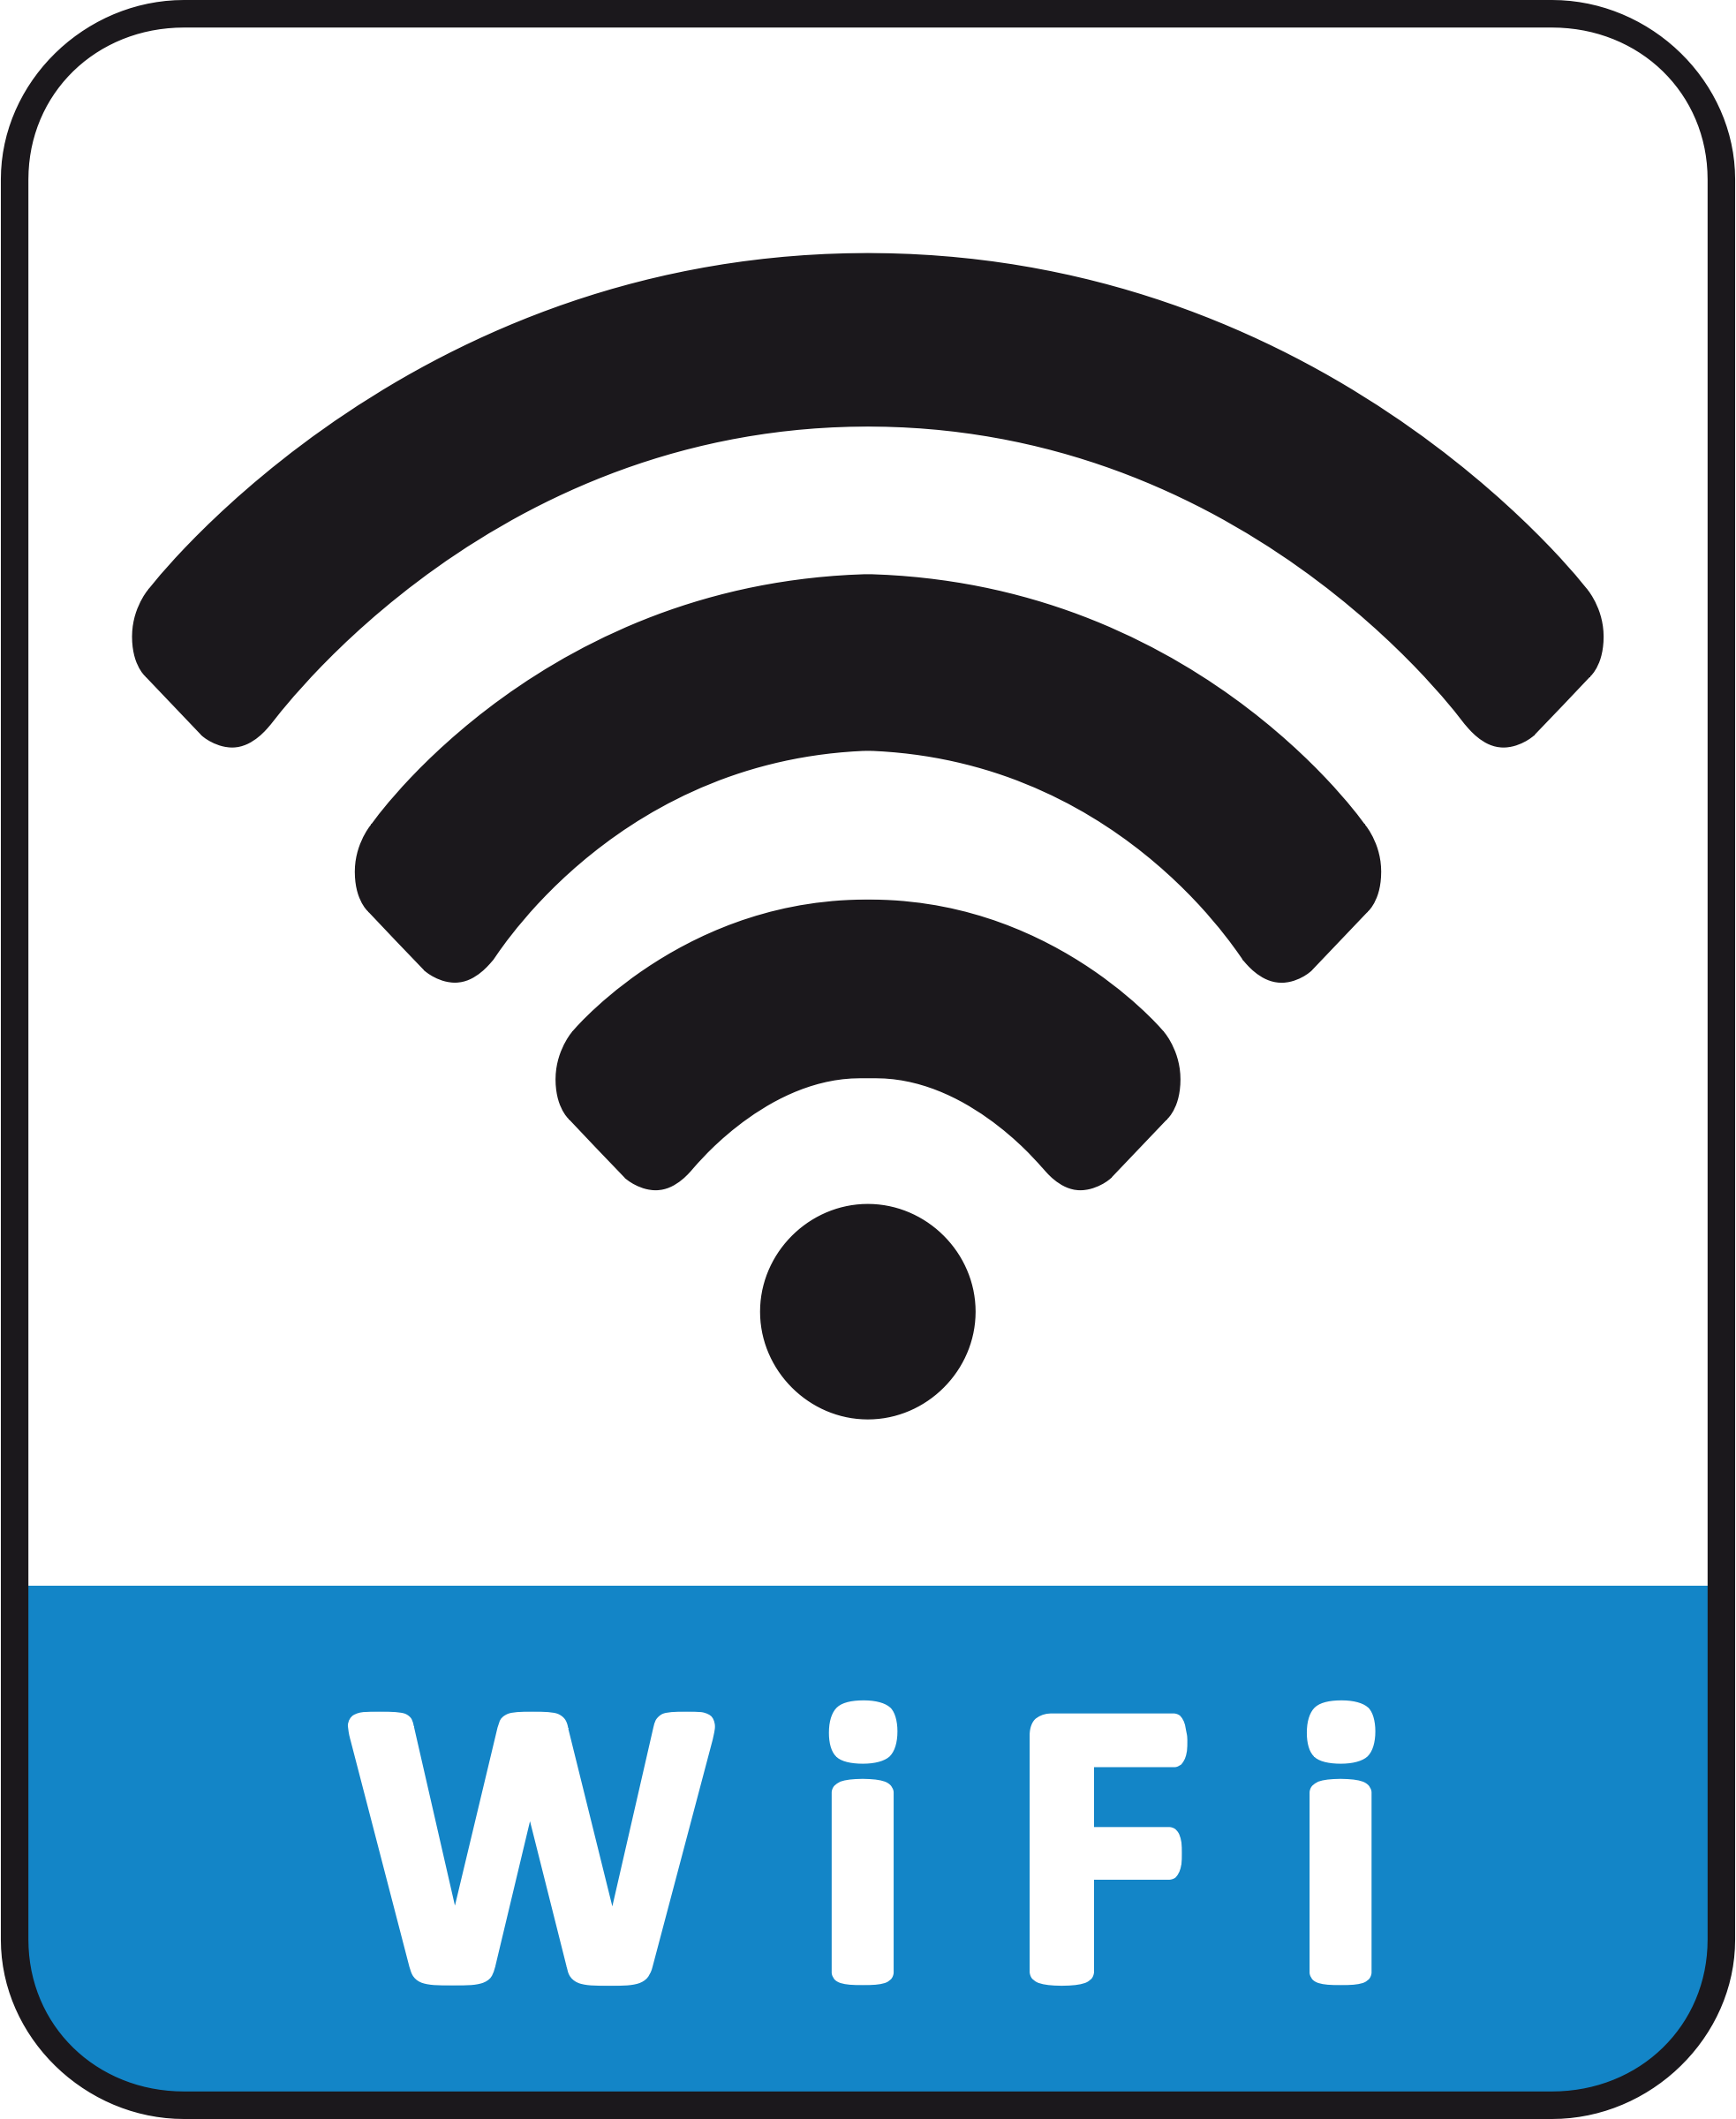 WiFi Connection Pictograph by HuongDesign